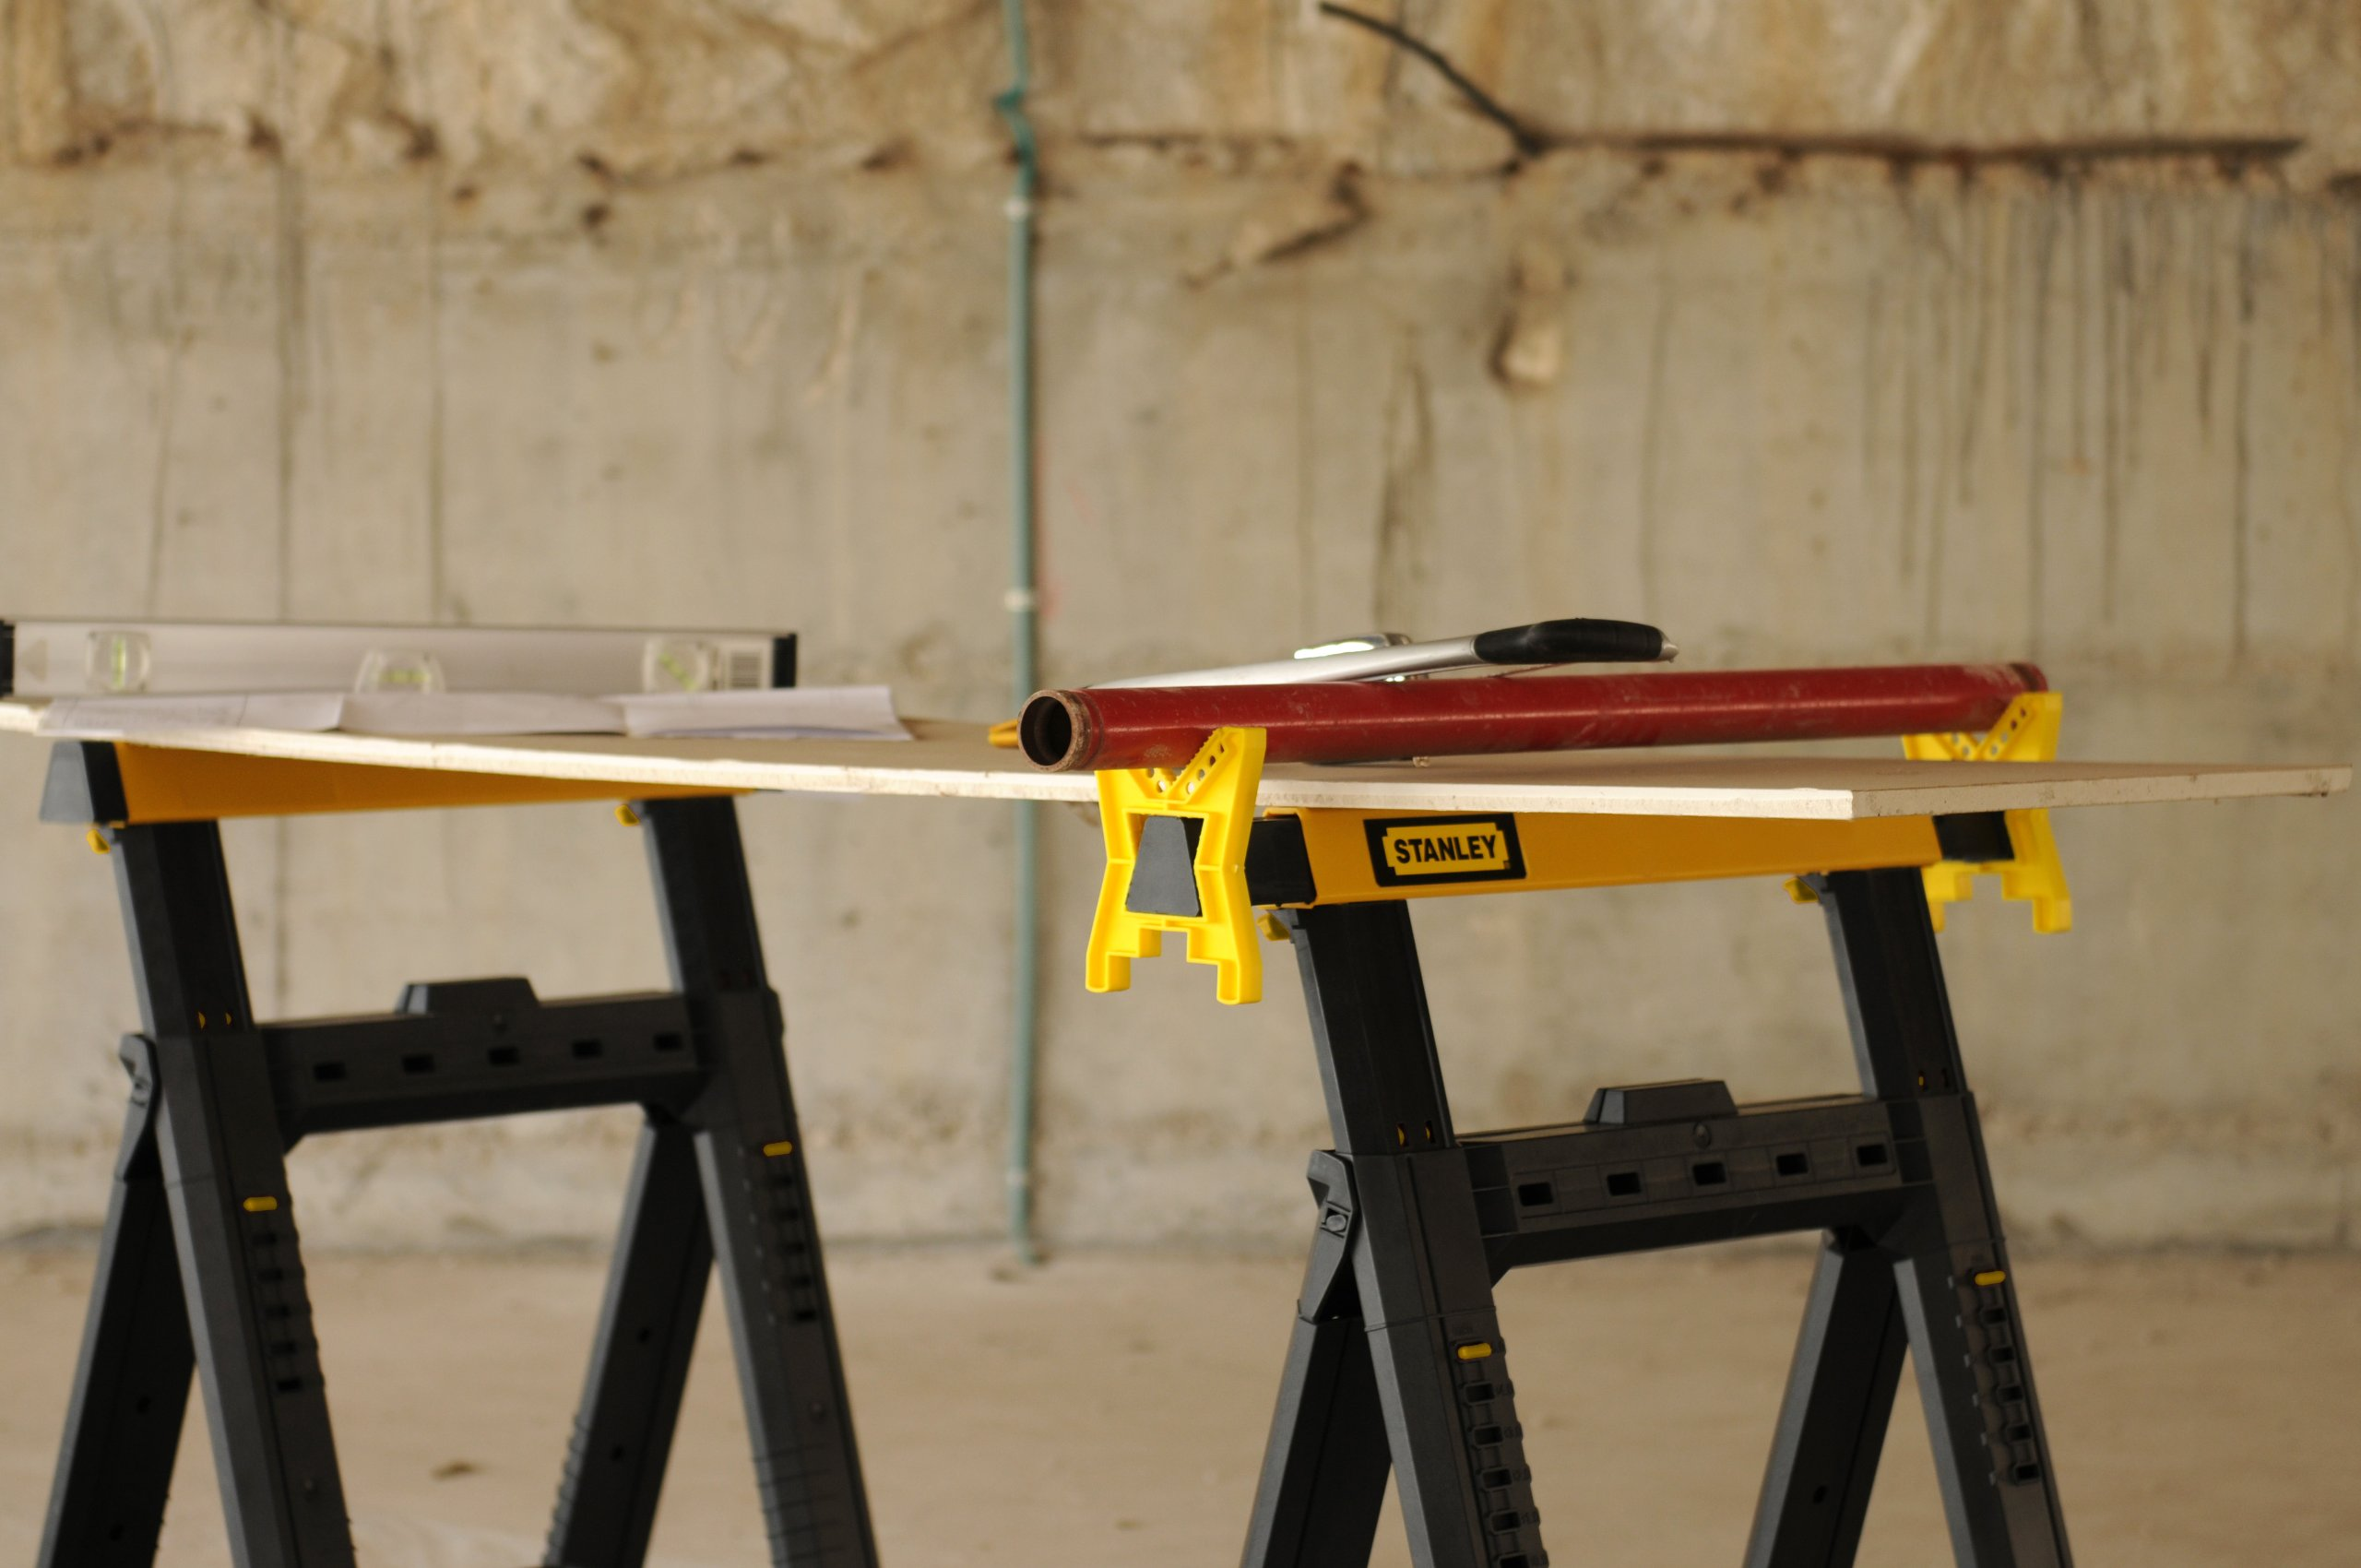 Stanley STST60626 Adjustable Sawhorse Twin Pack by Stanley (Image #4)